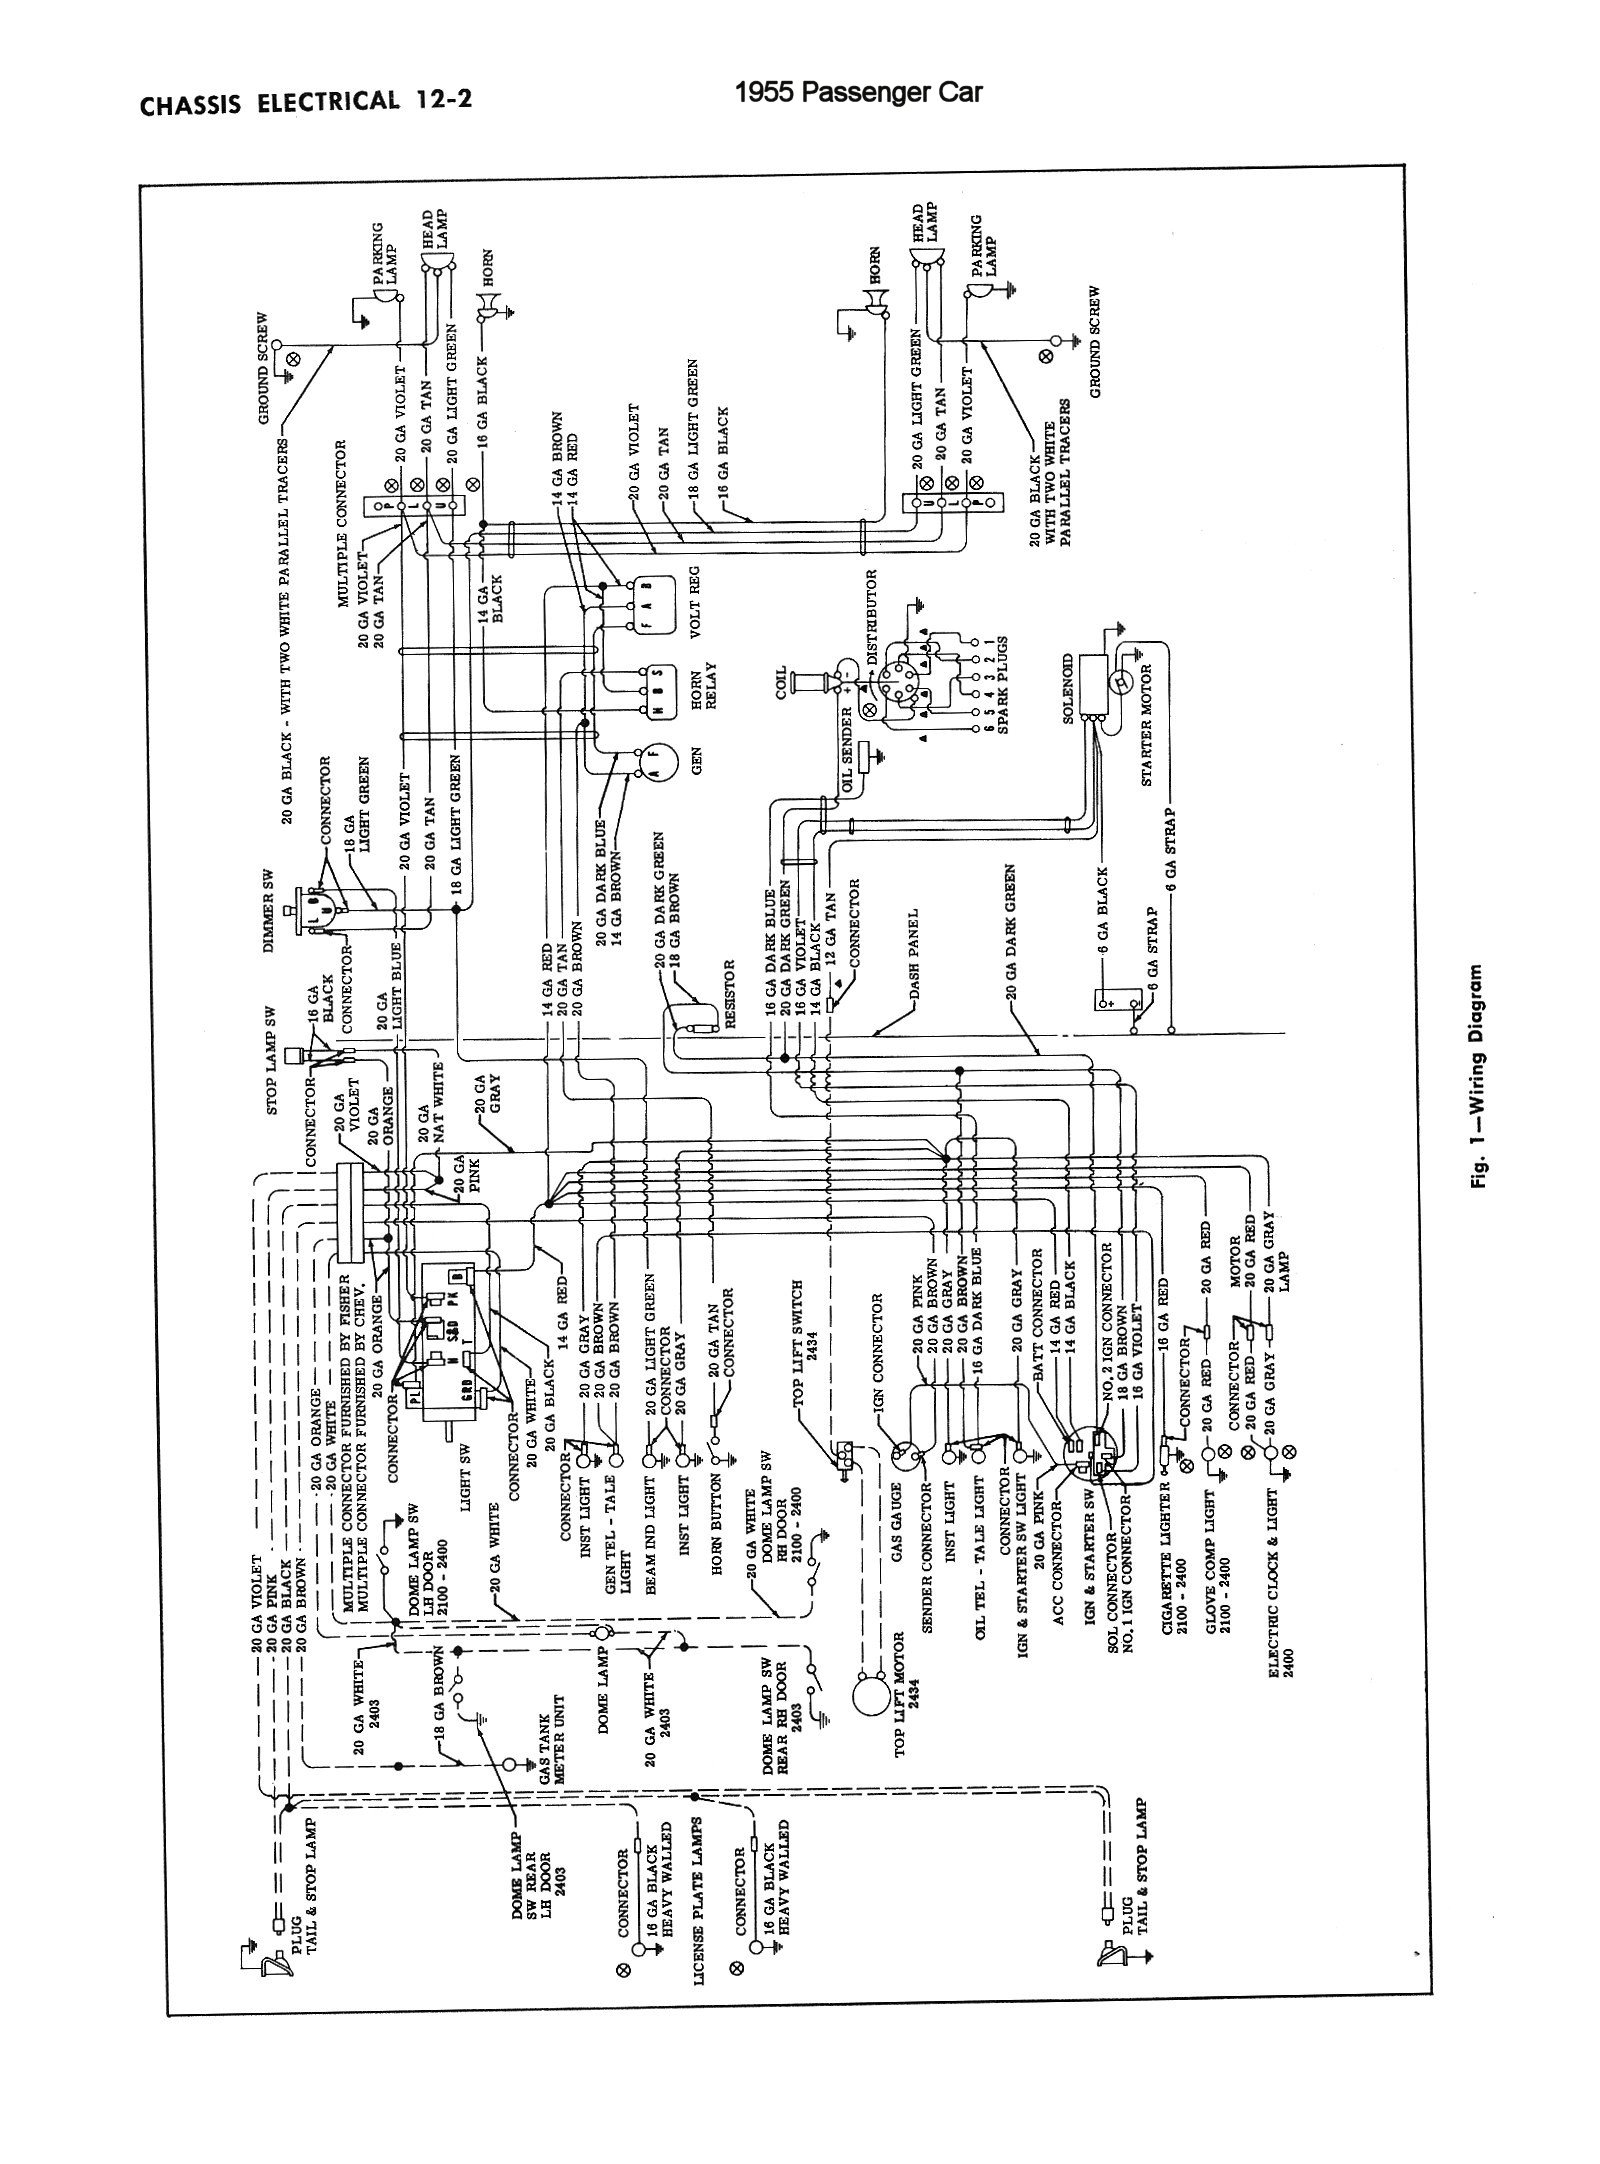 1953 chevy wiring diagram  chevy  wiring diagram images